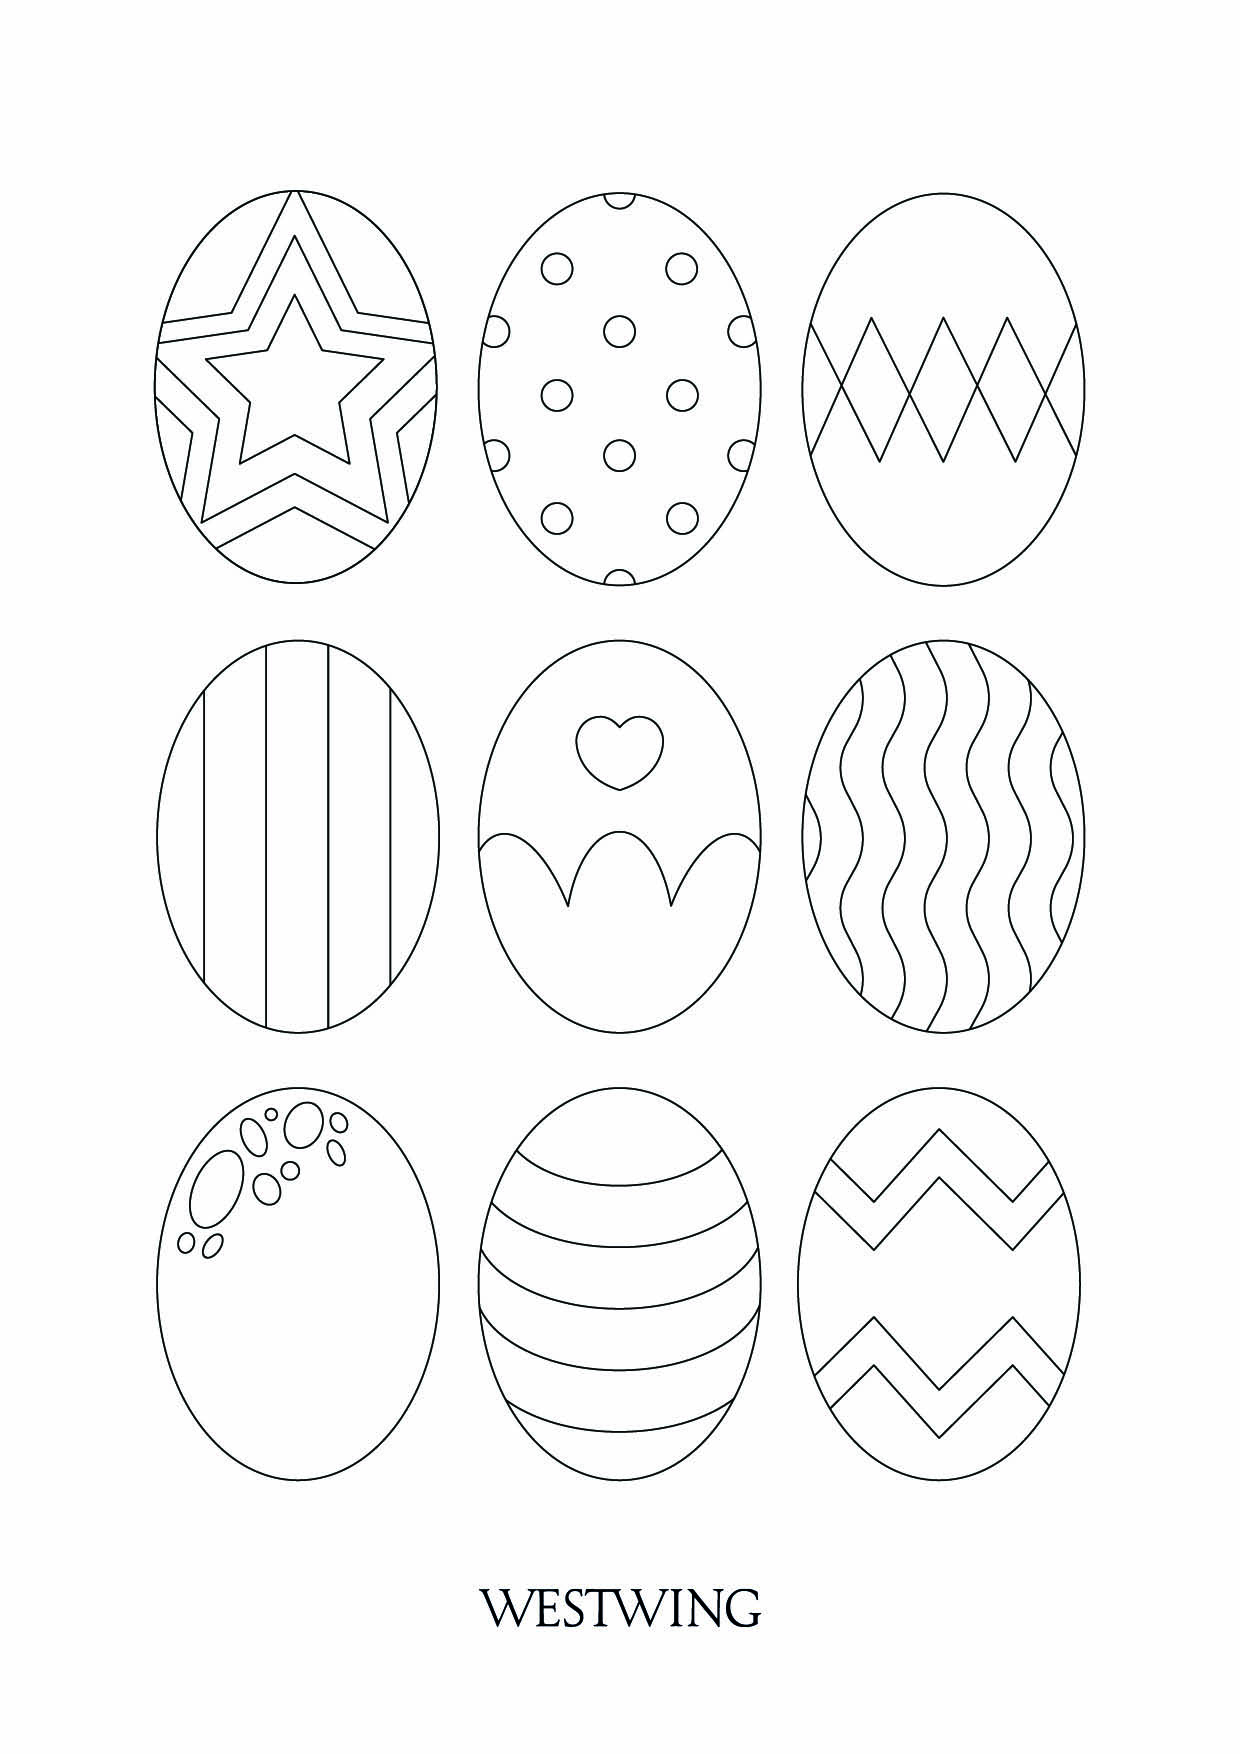 Printable Easter coloring page to print and color